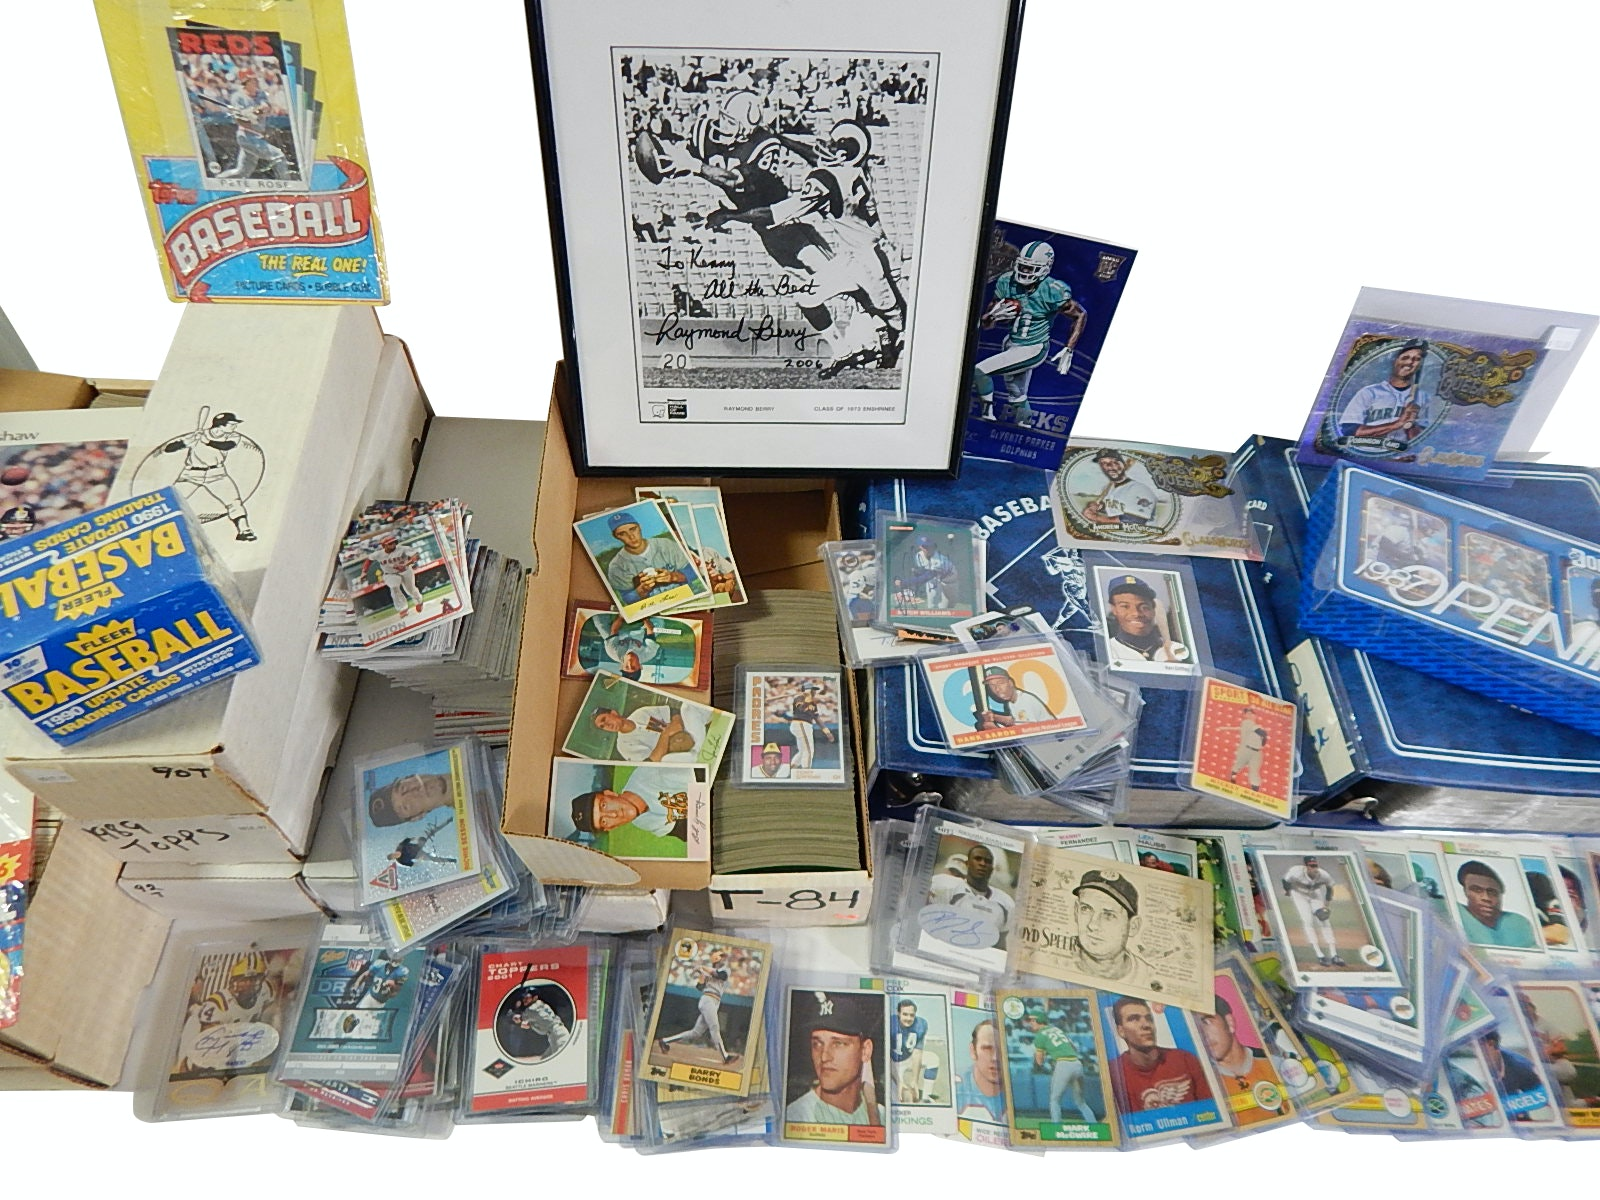 Sports Card Collection with 1958 Topps M. Mantle #487 - Around 7000 Count